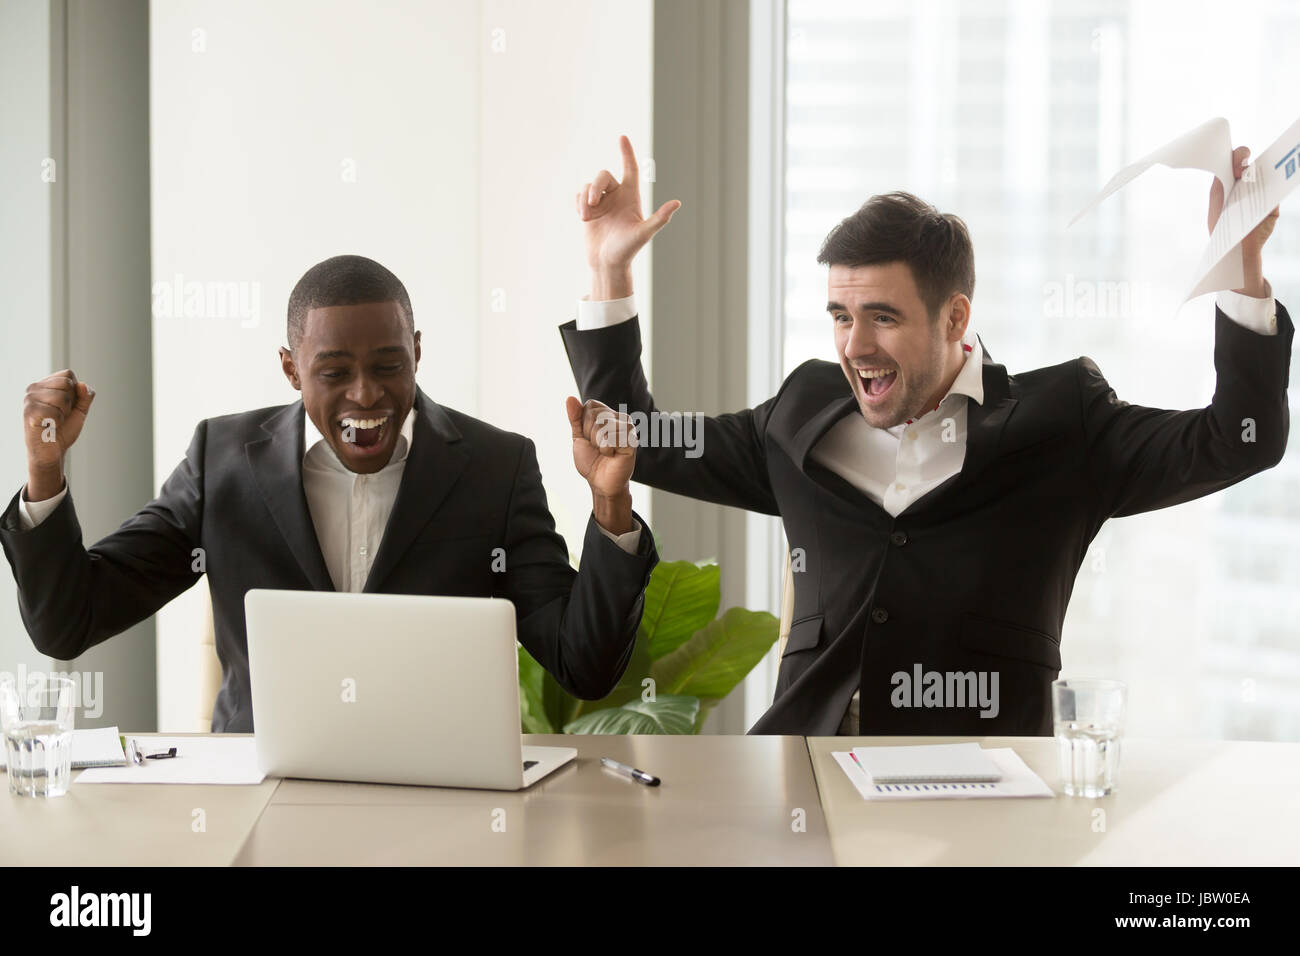 Two happy businessmen in suits raising hands near laptop, multicultural business group celebrate victory, stock - Stock Image